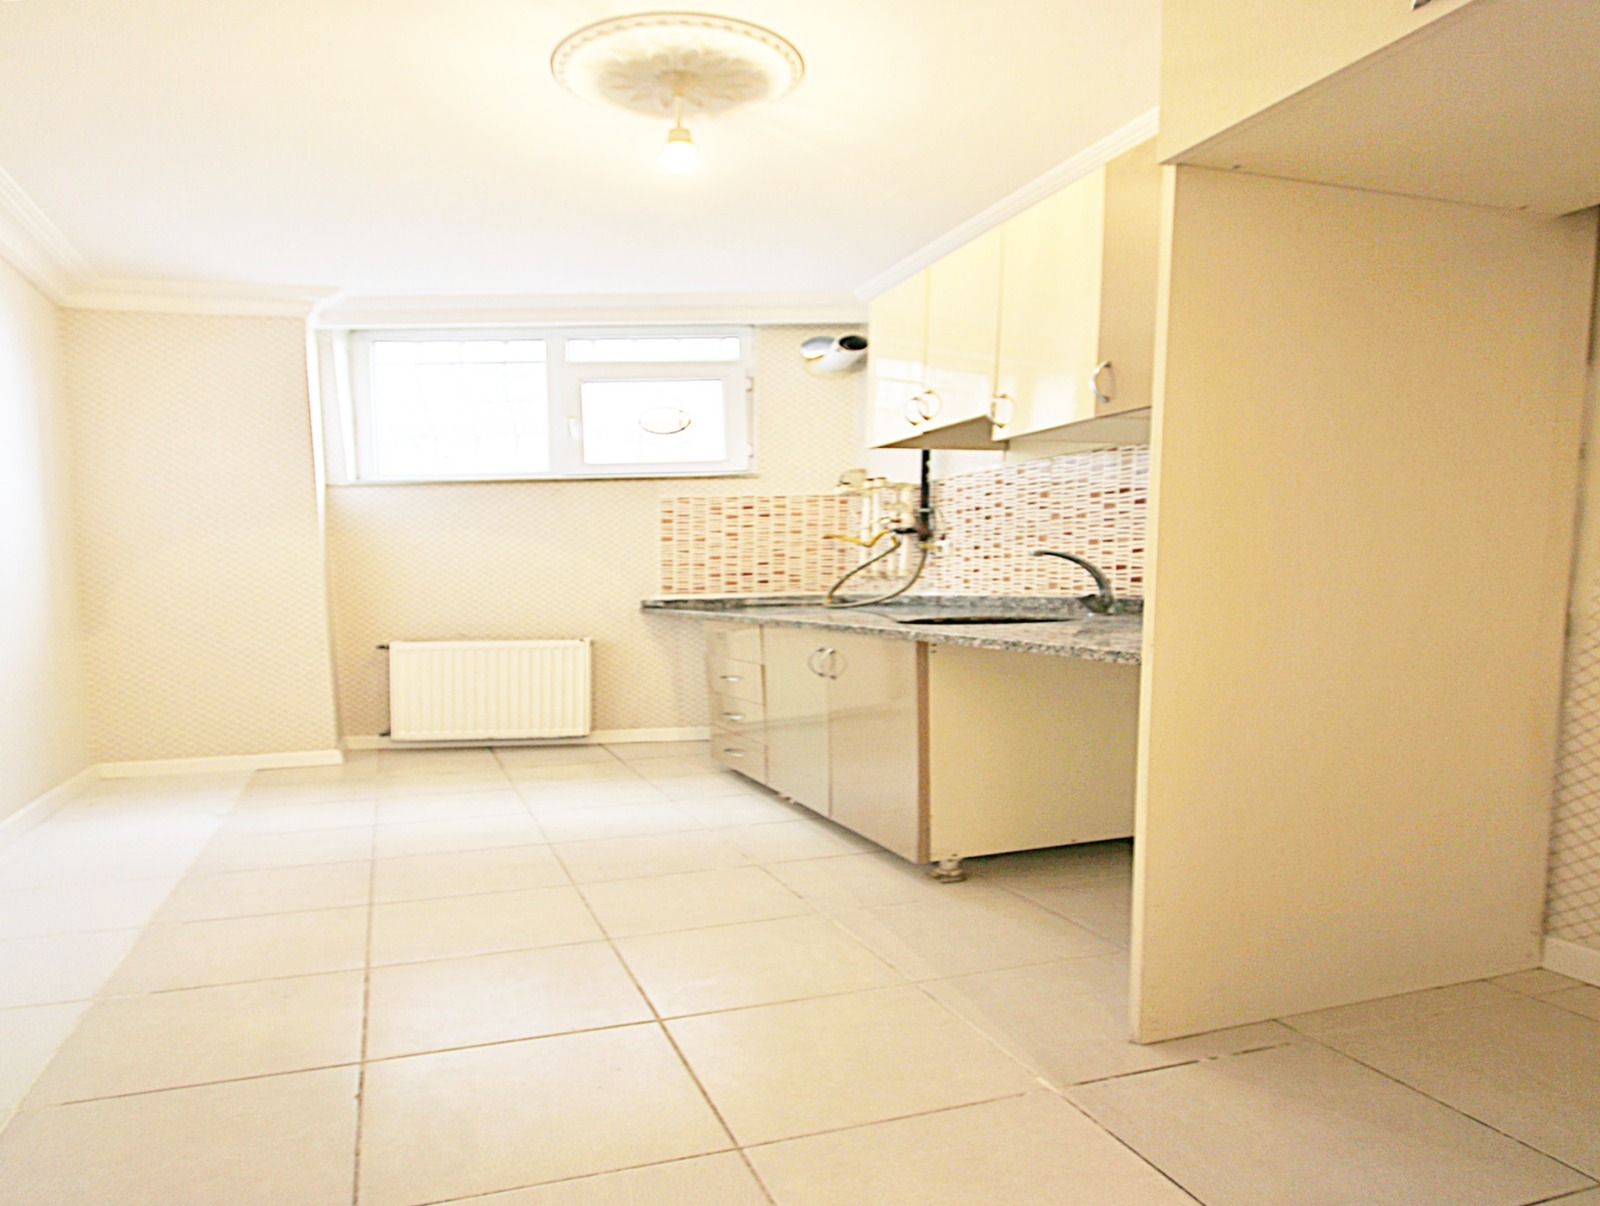 sale flat apartment 2 1 in new building cheape flat by